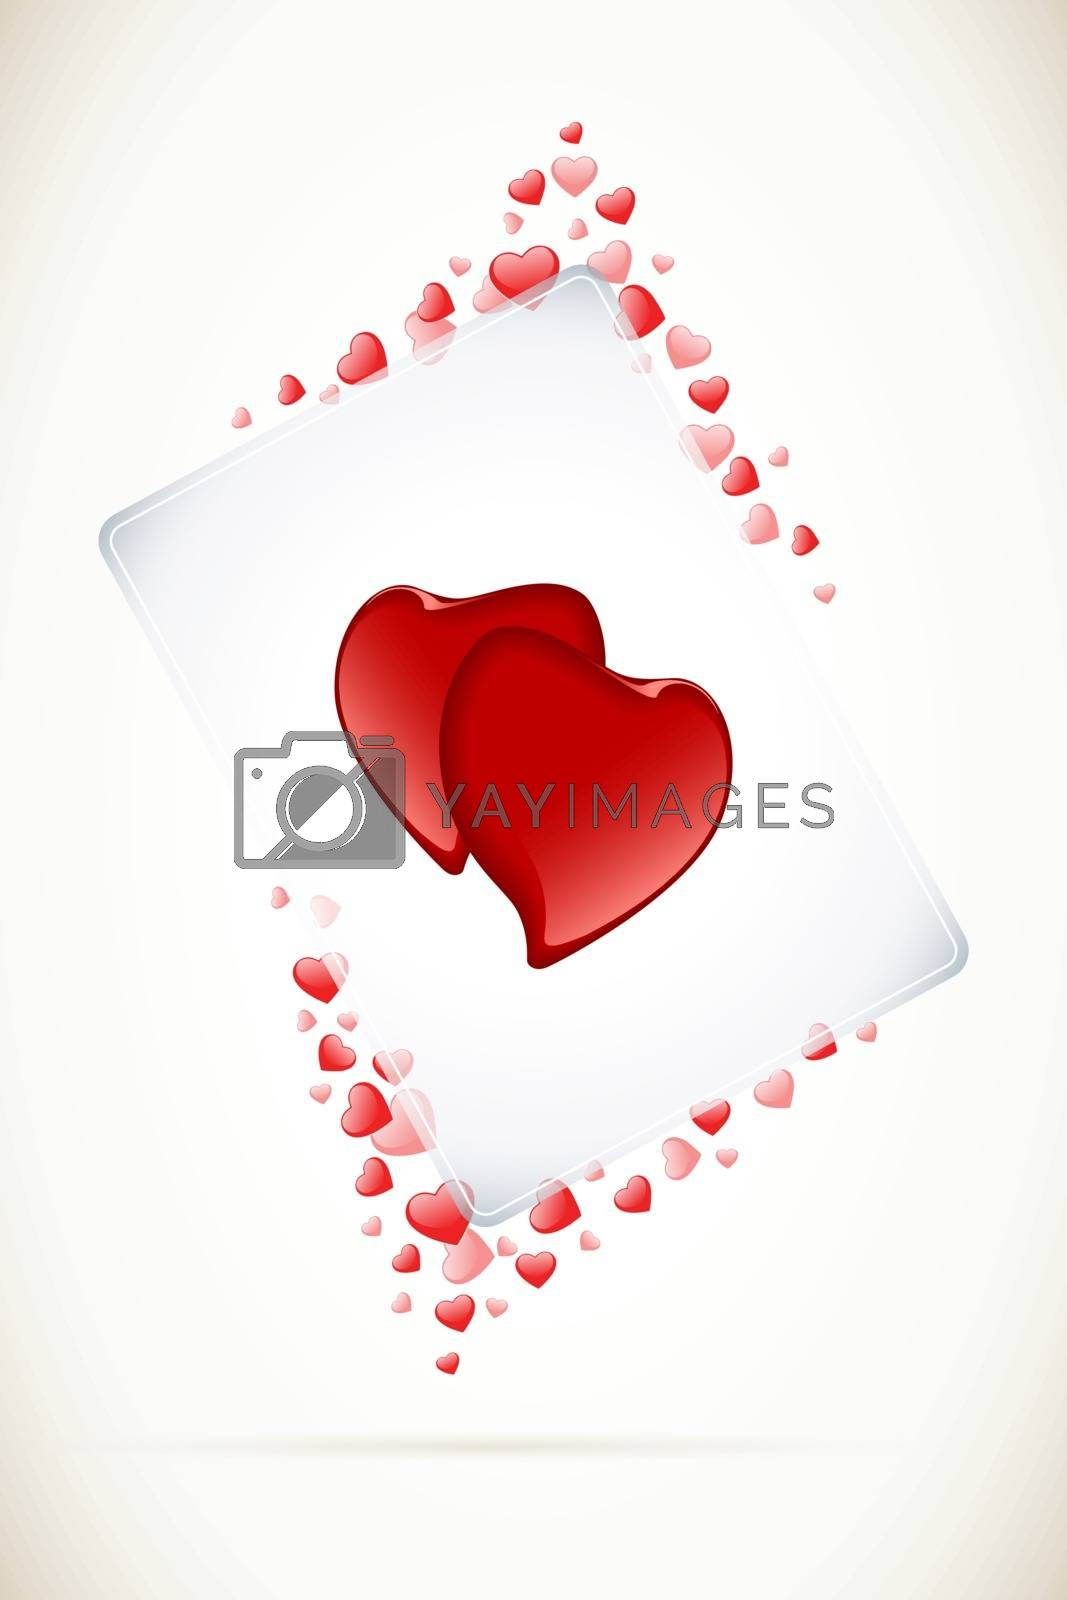 Abstract Valentines Day Card with hearts and transparency